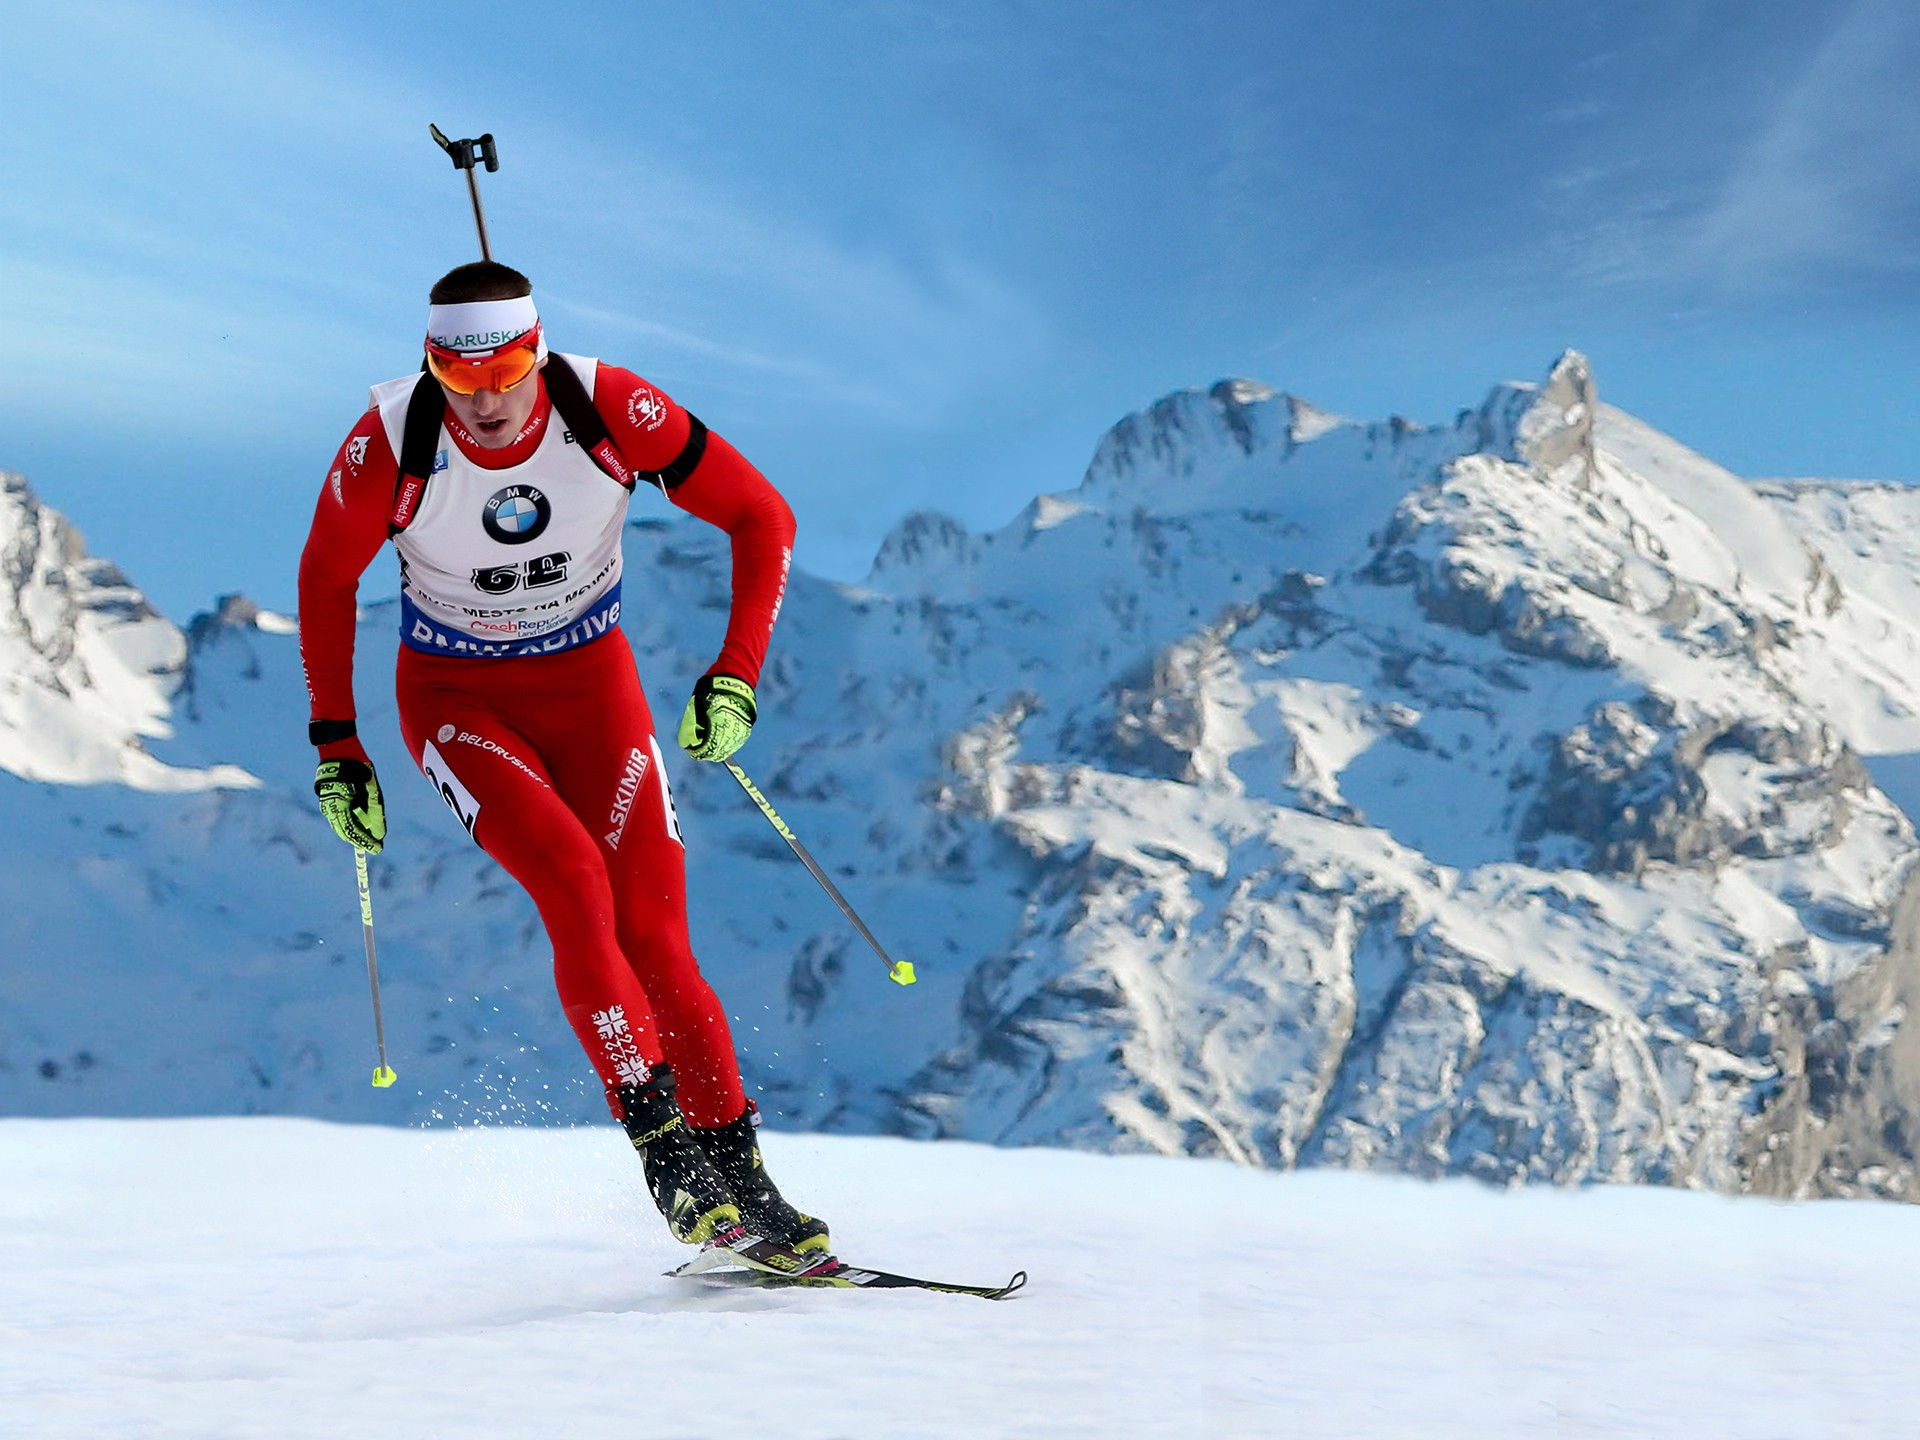 Biathlon Wallpapers 73 images in Collection Page 1 1920x1440